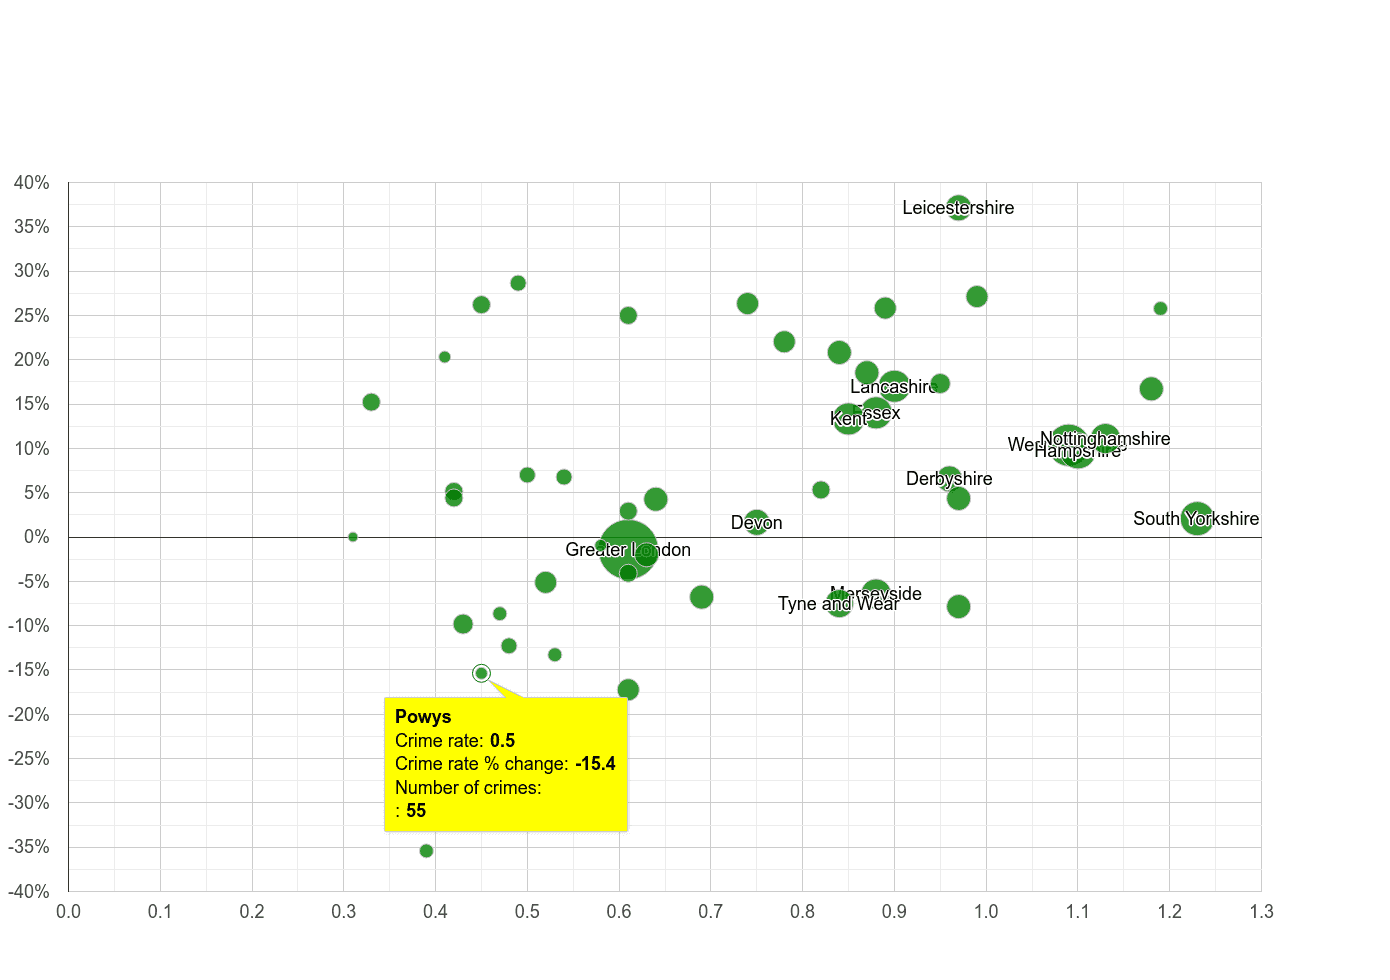 Powys possession of weapons crime rate compared to other counties